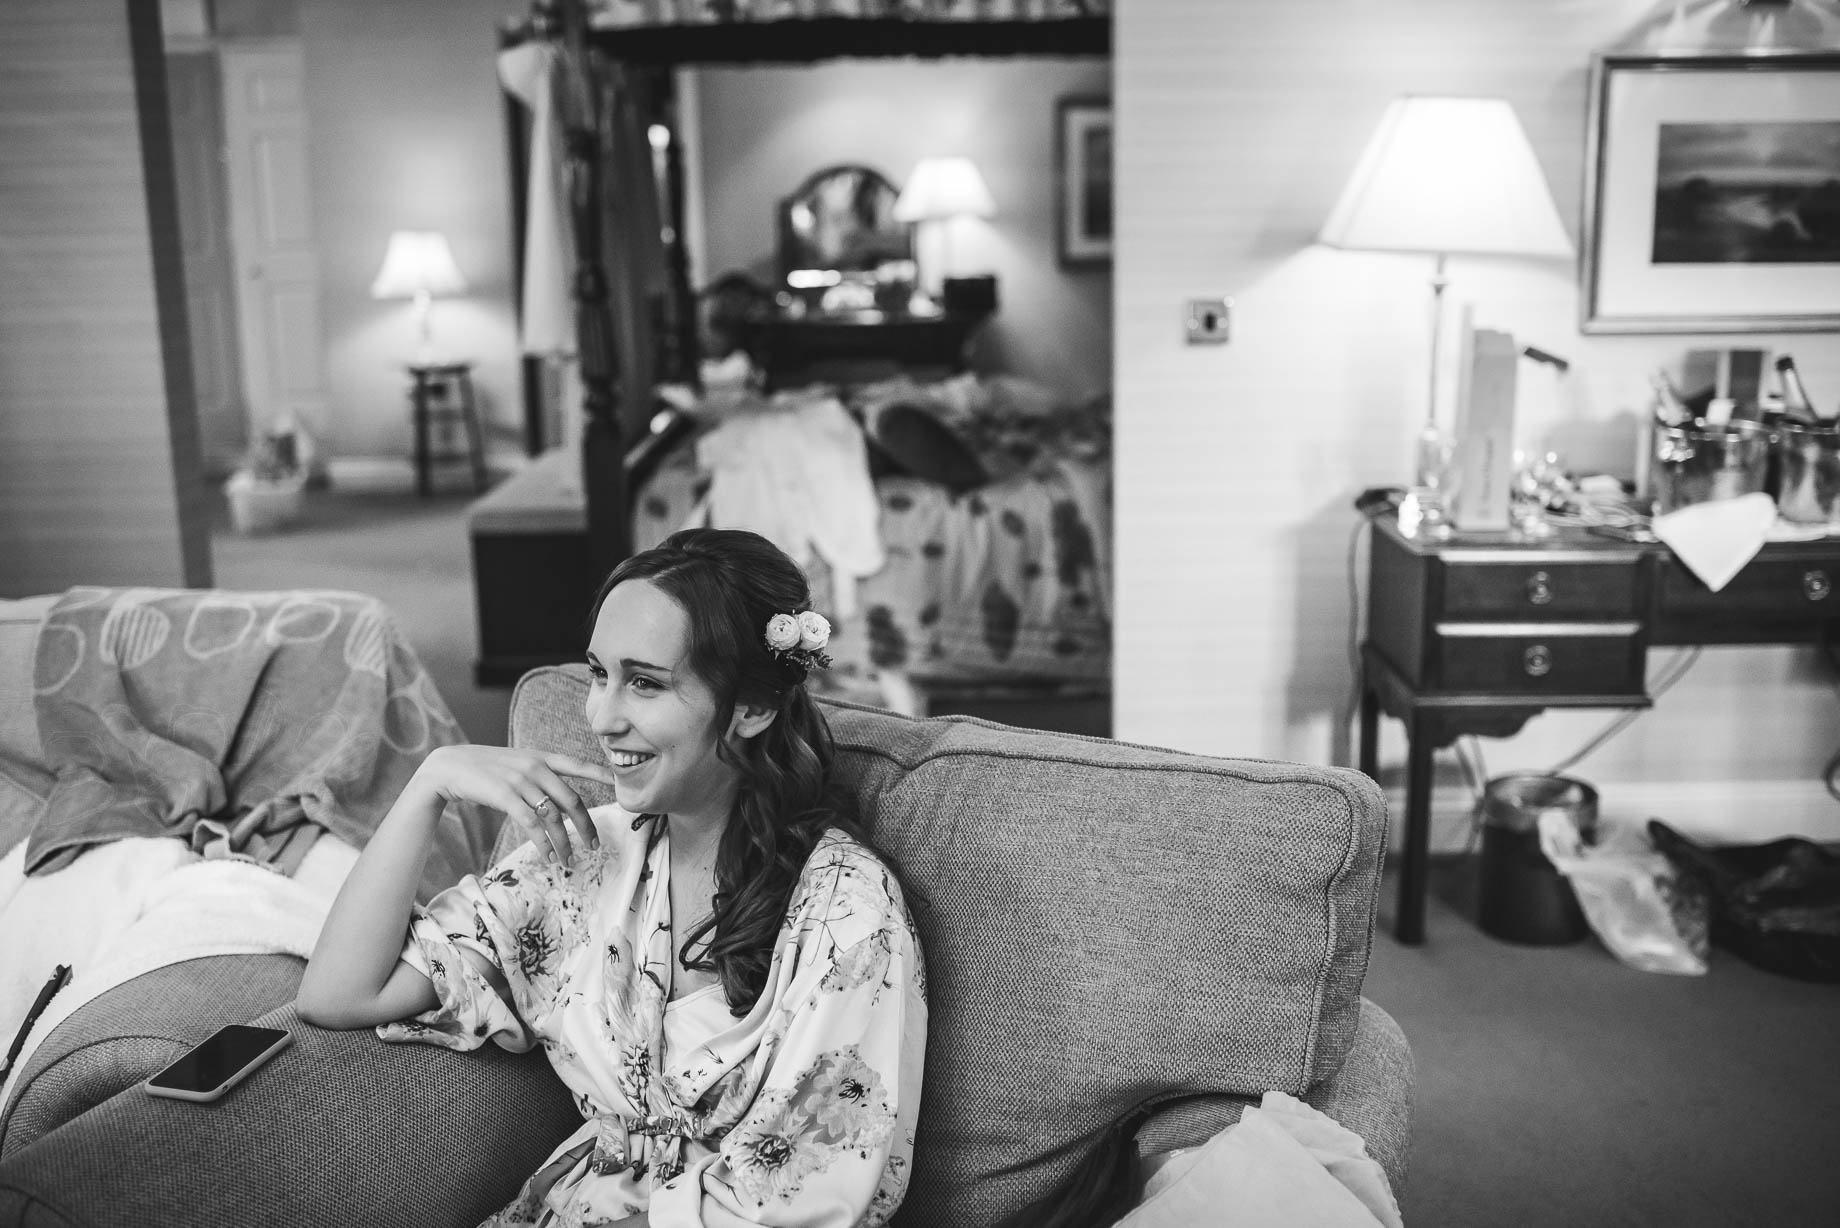 Luton Hoo wedding photography by Guy Collier Photography - Lauren and Gem (39 of 178)